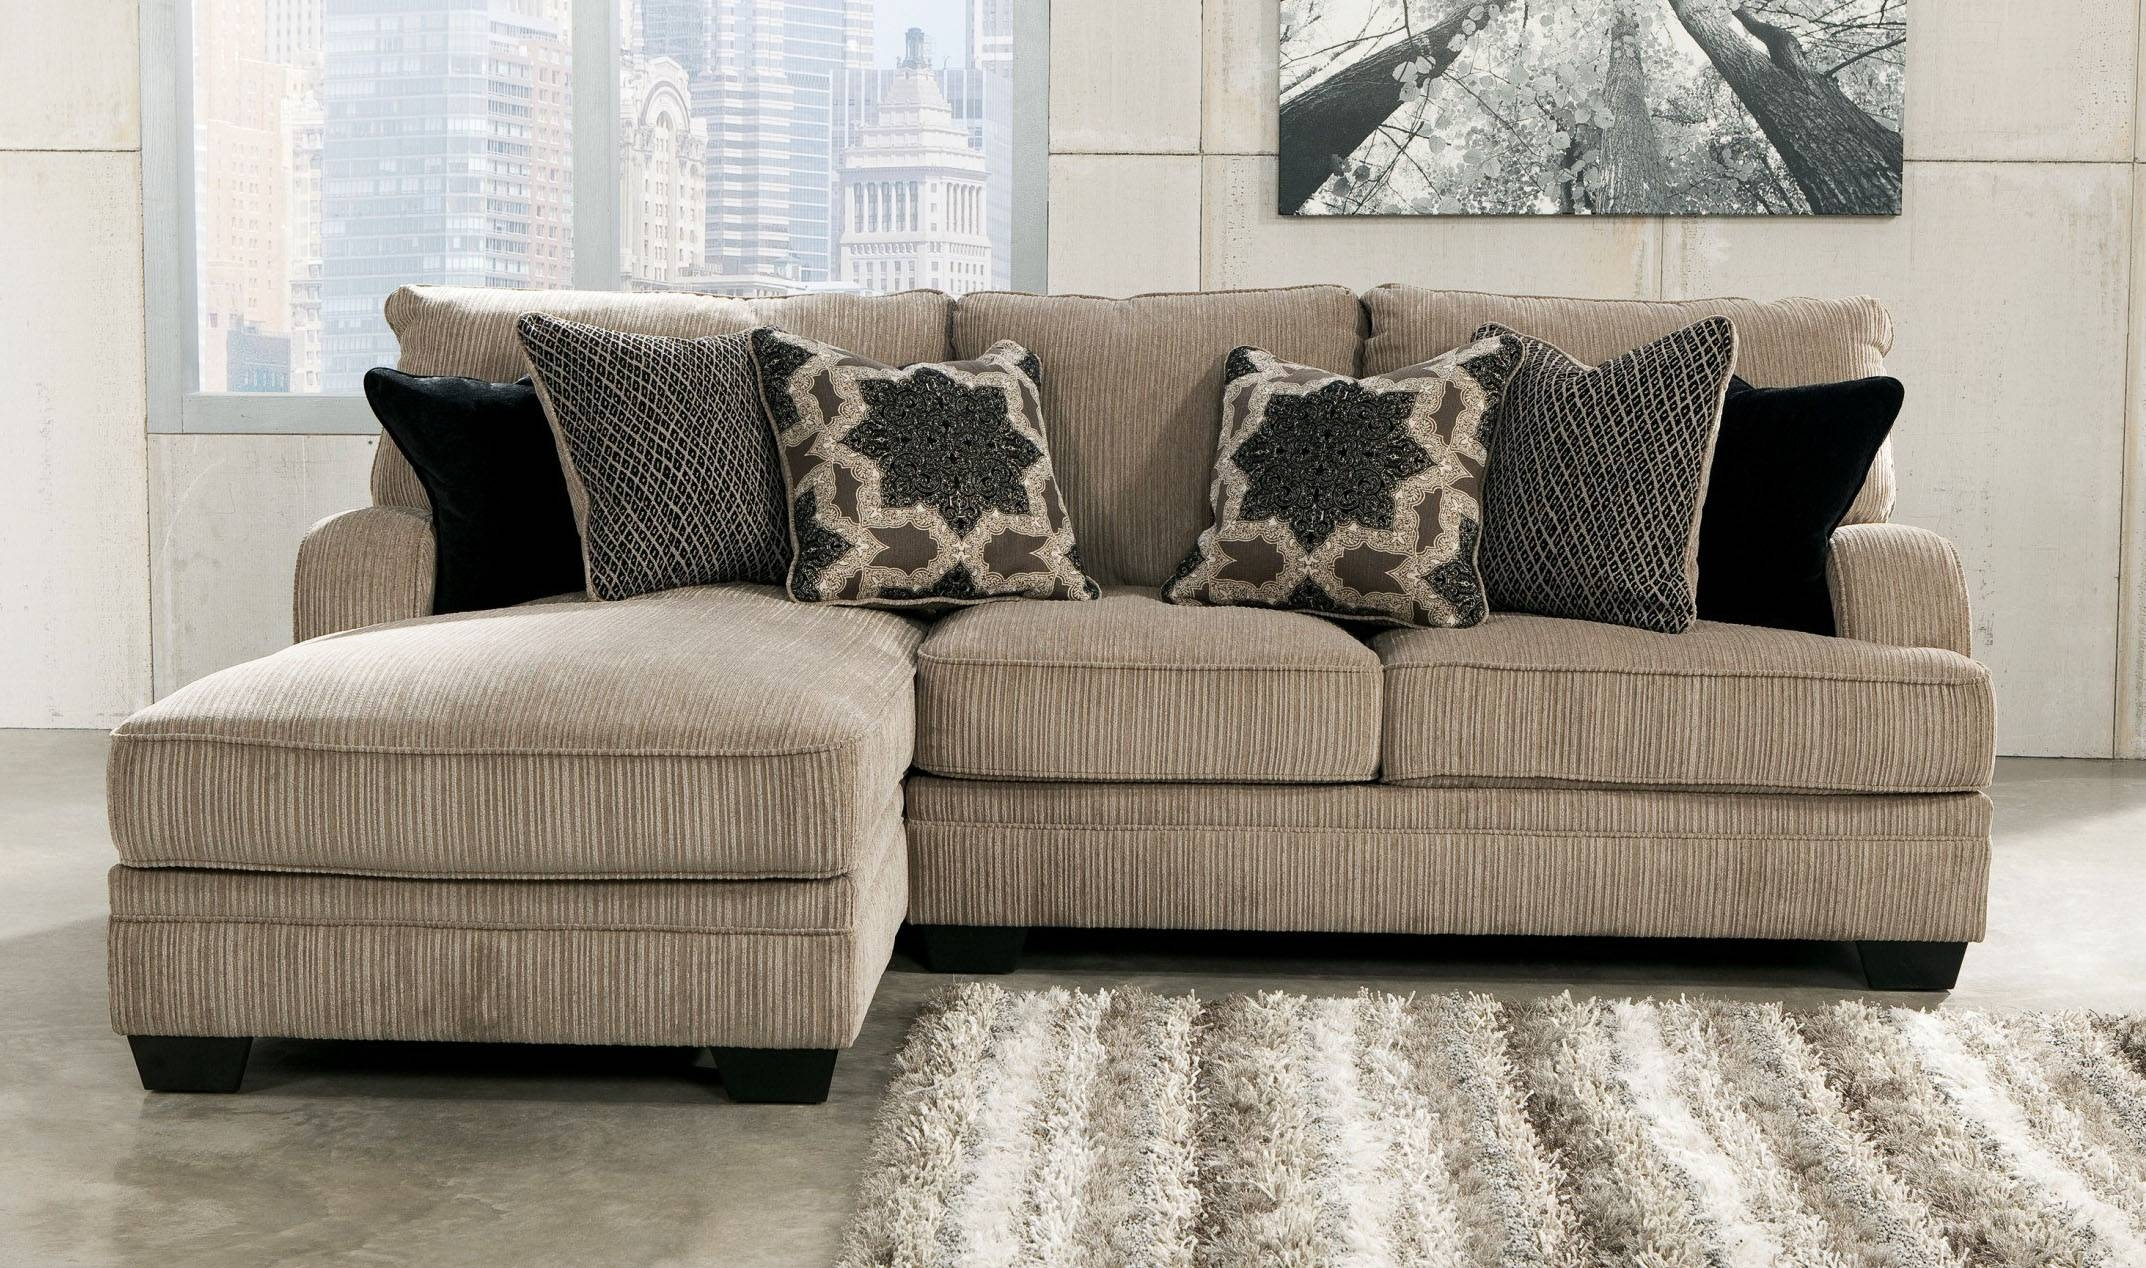 Contemporary Sectional Sofas For Small Spaces Charming Small Scale for Short Sectional Sofas (Image 4 of 15)